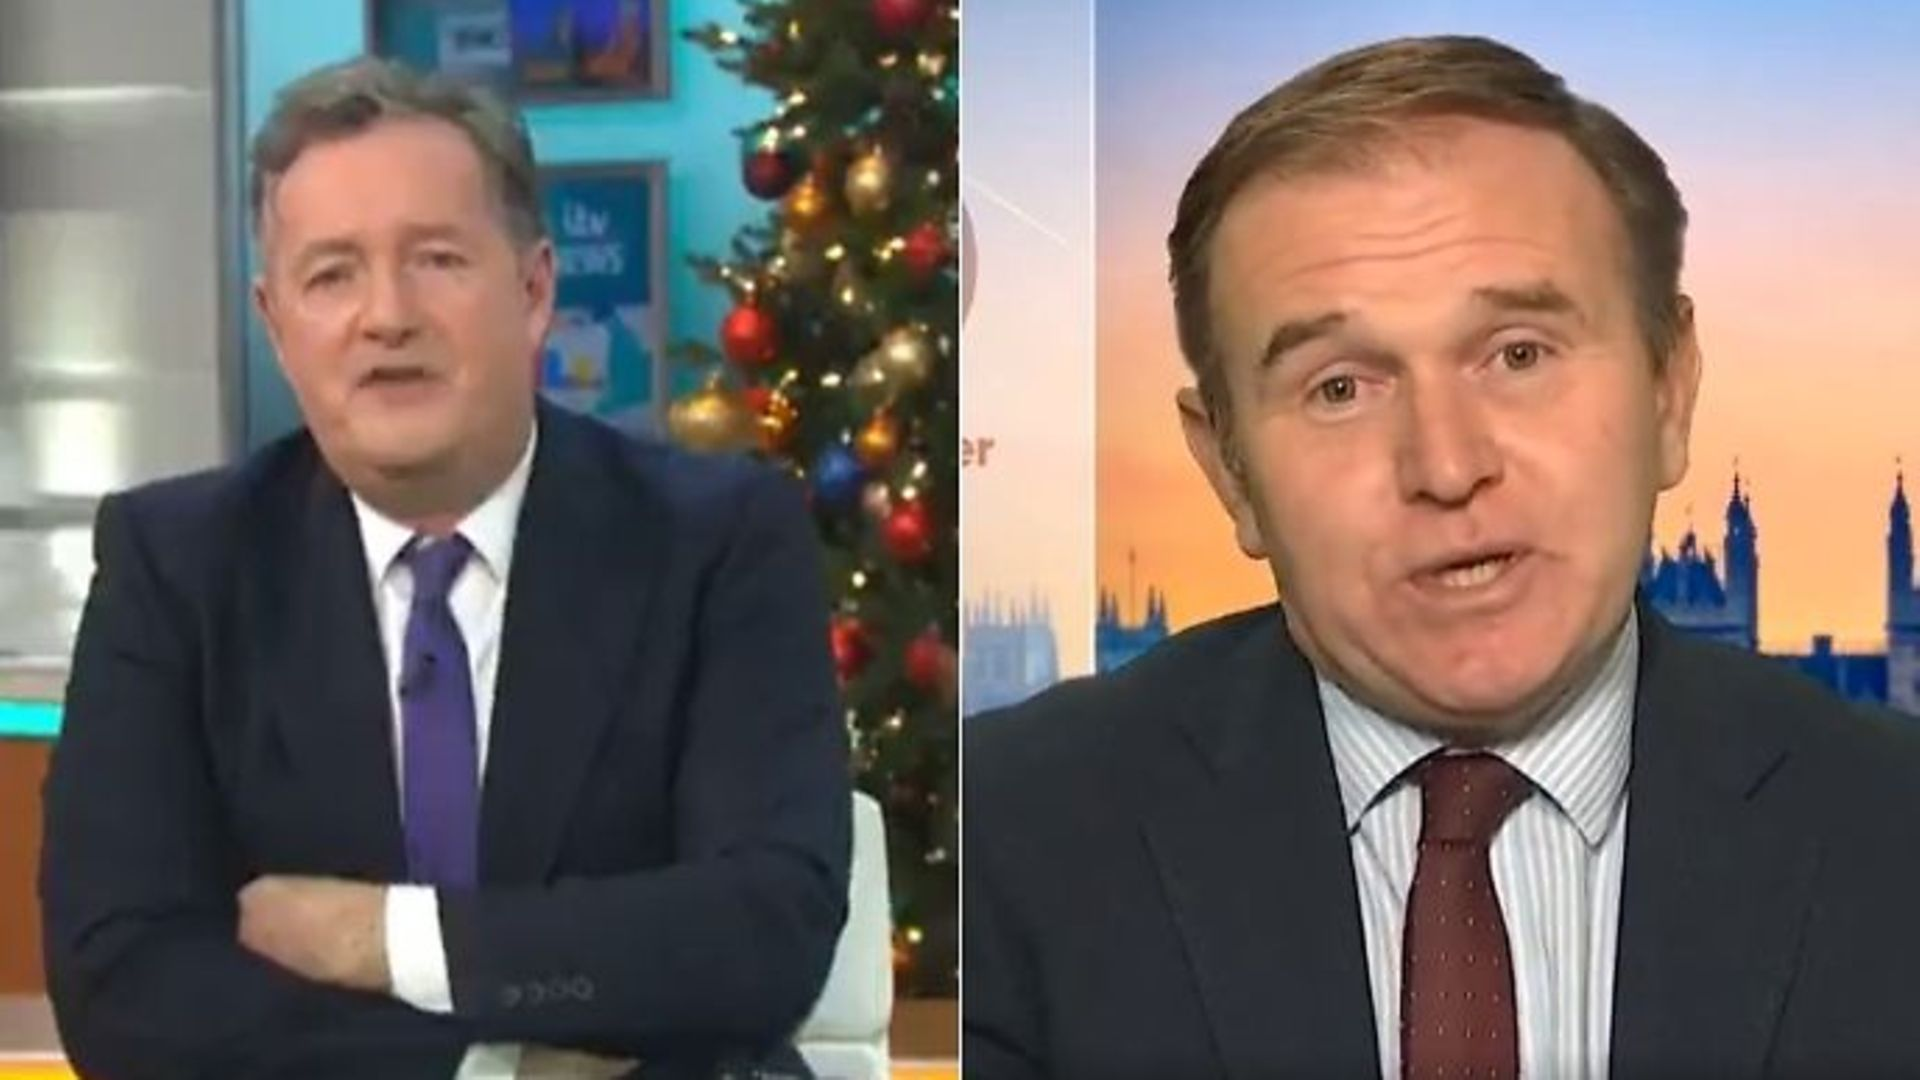 Cabinet minister George Eustice (R) has clashed with Piers Morgan after defended a six-month government boycott of Good Morning Britain - Credit: Twitter